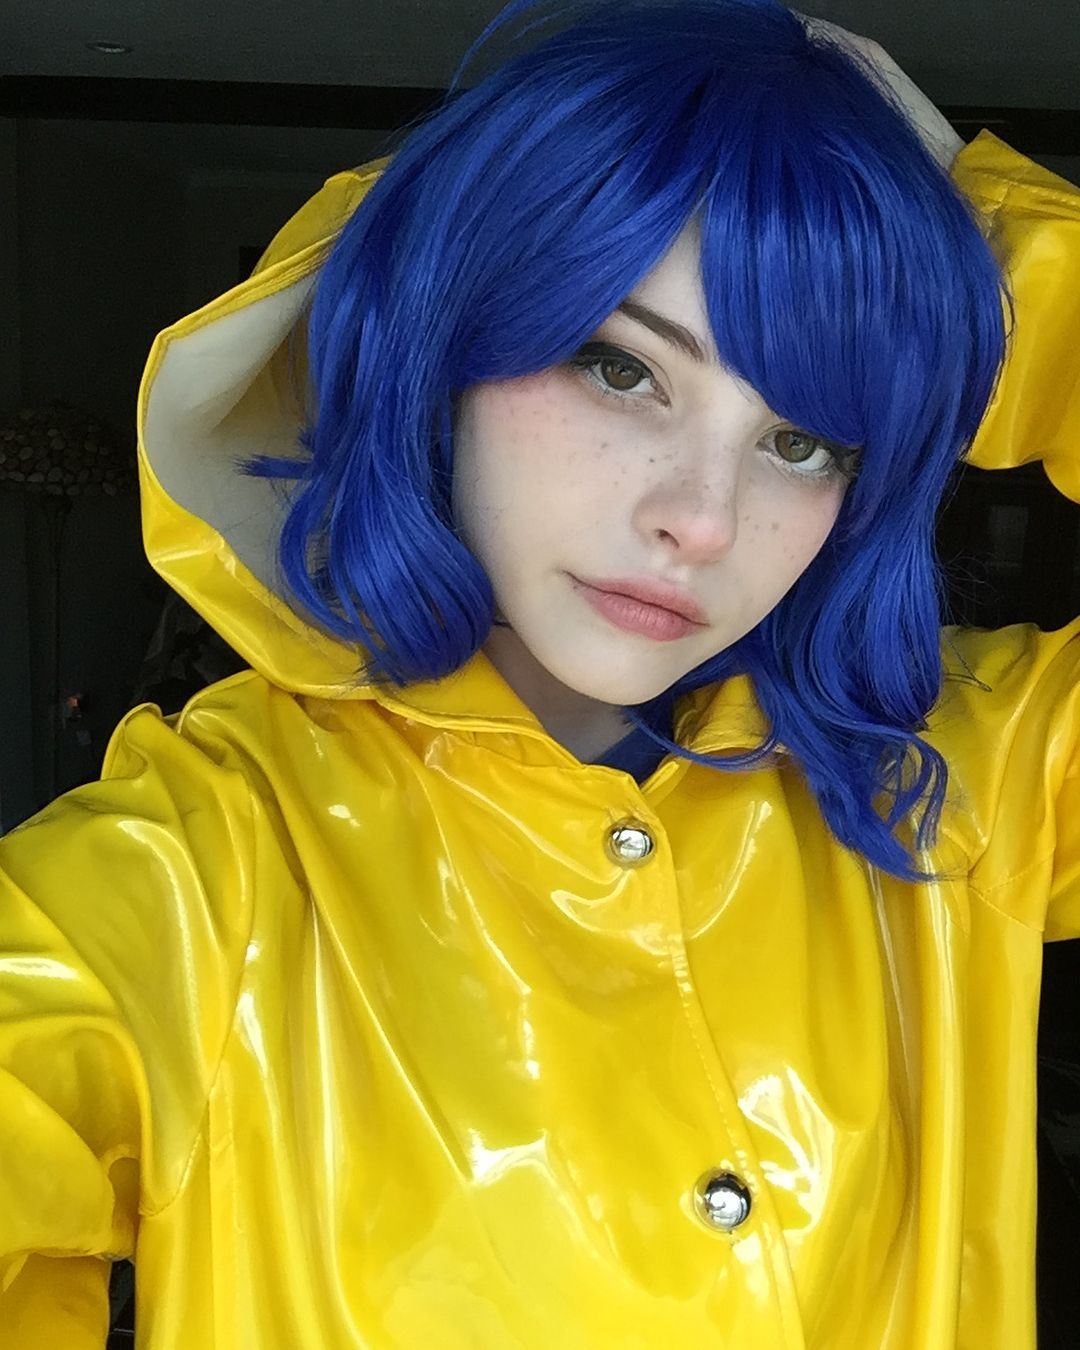 Diy Coraline Costume Ideas Tutorial For Halloween Maskerix Com Coraline Halloween Costume Haloween Costumes Halloween Outfits